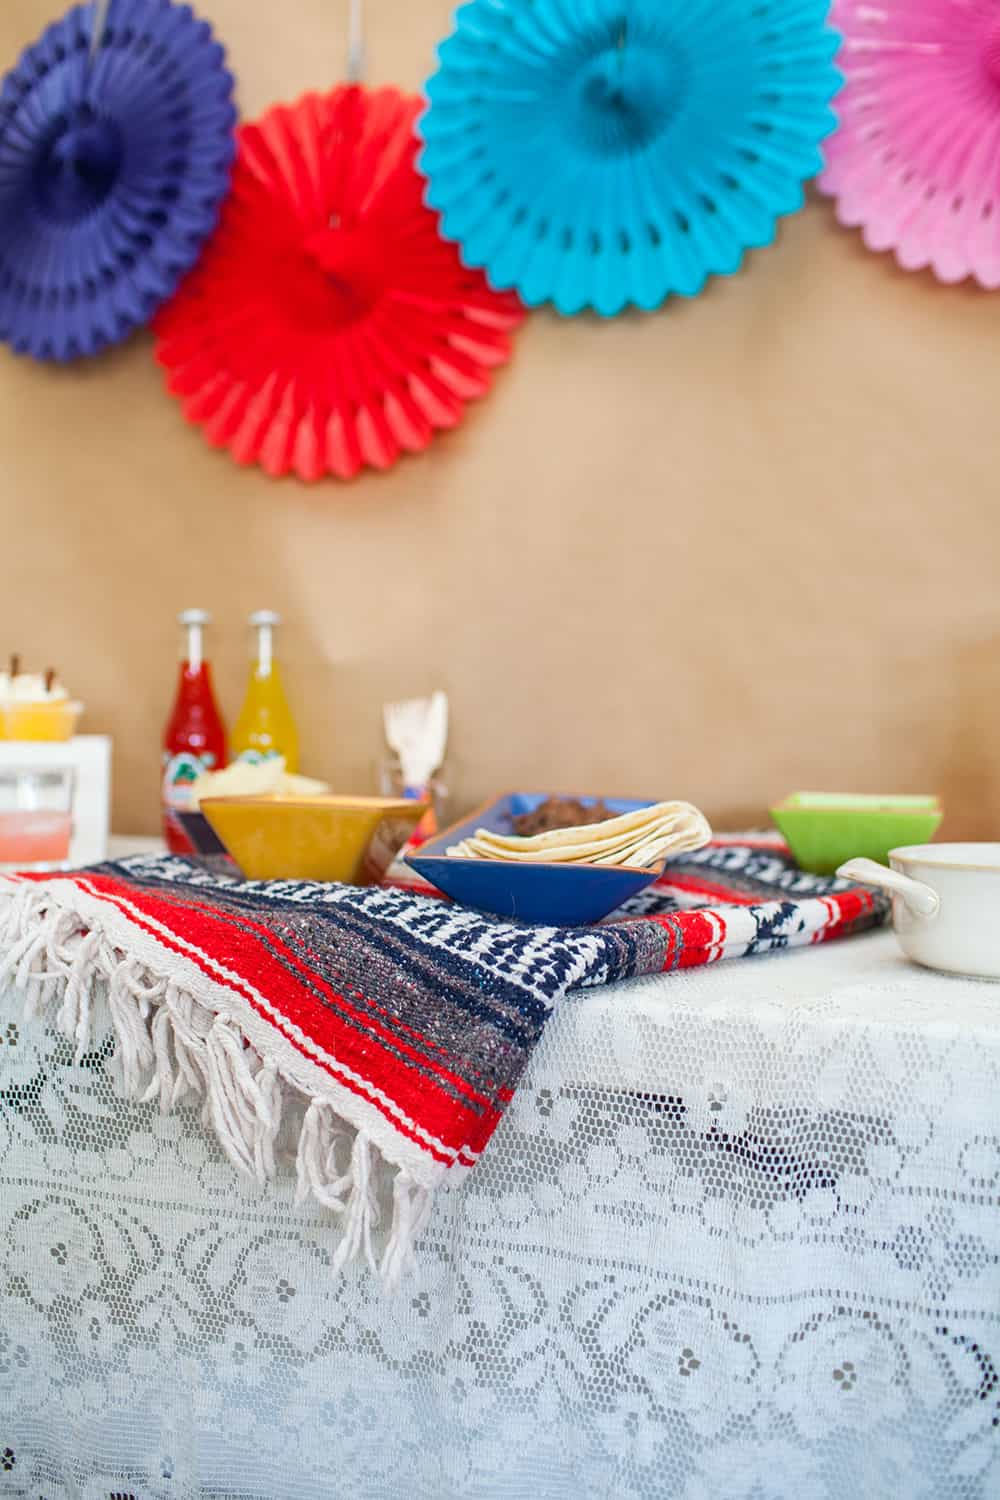 This Cinco de Mayo party inspiration will give you all the ideas you need for the perfect Cinco de Mayo parties and recipes!